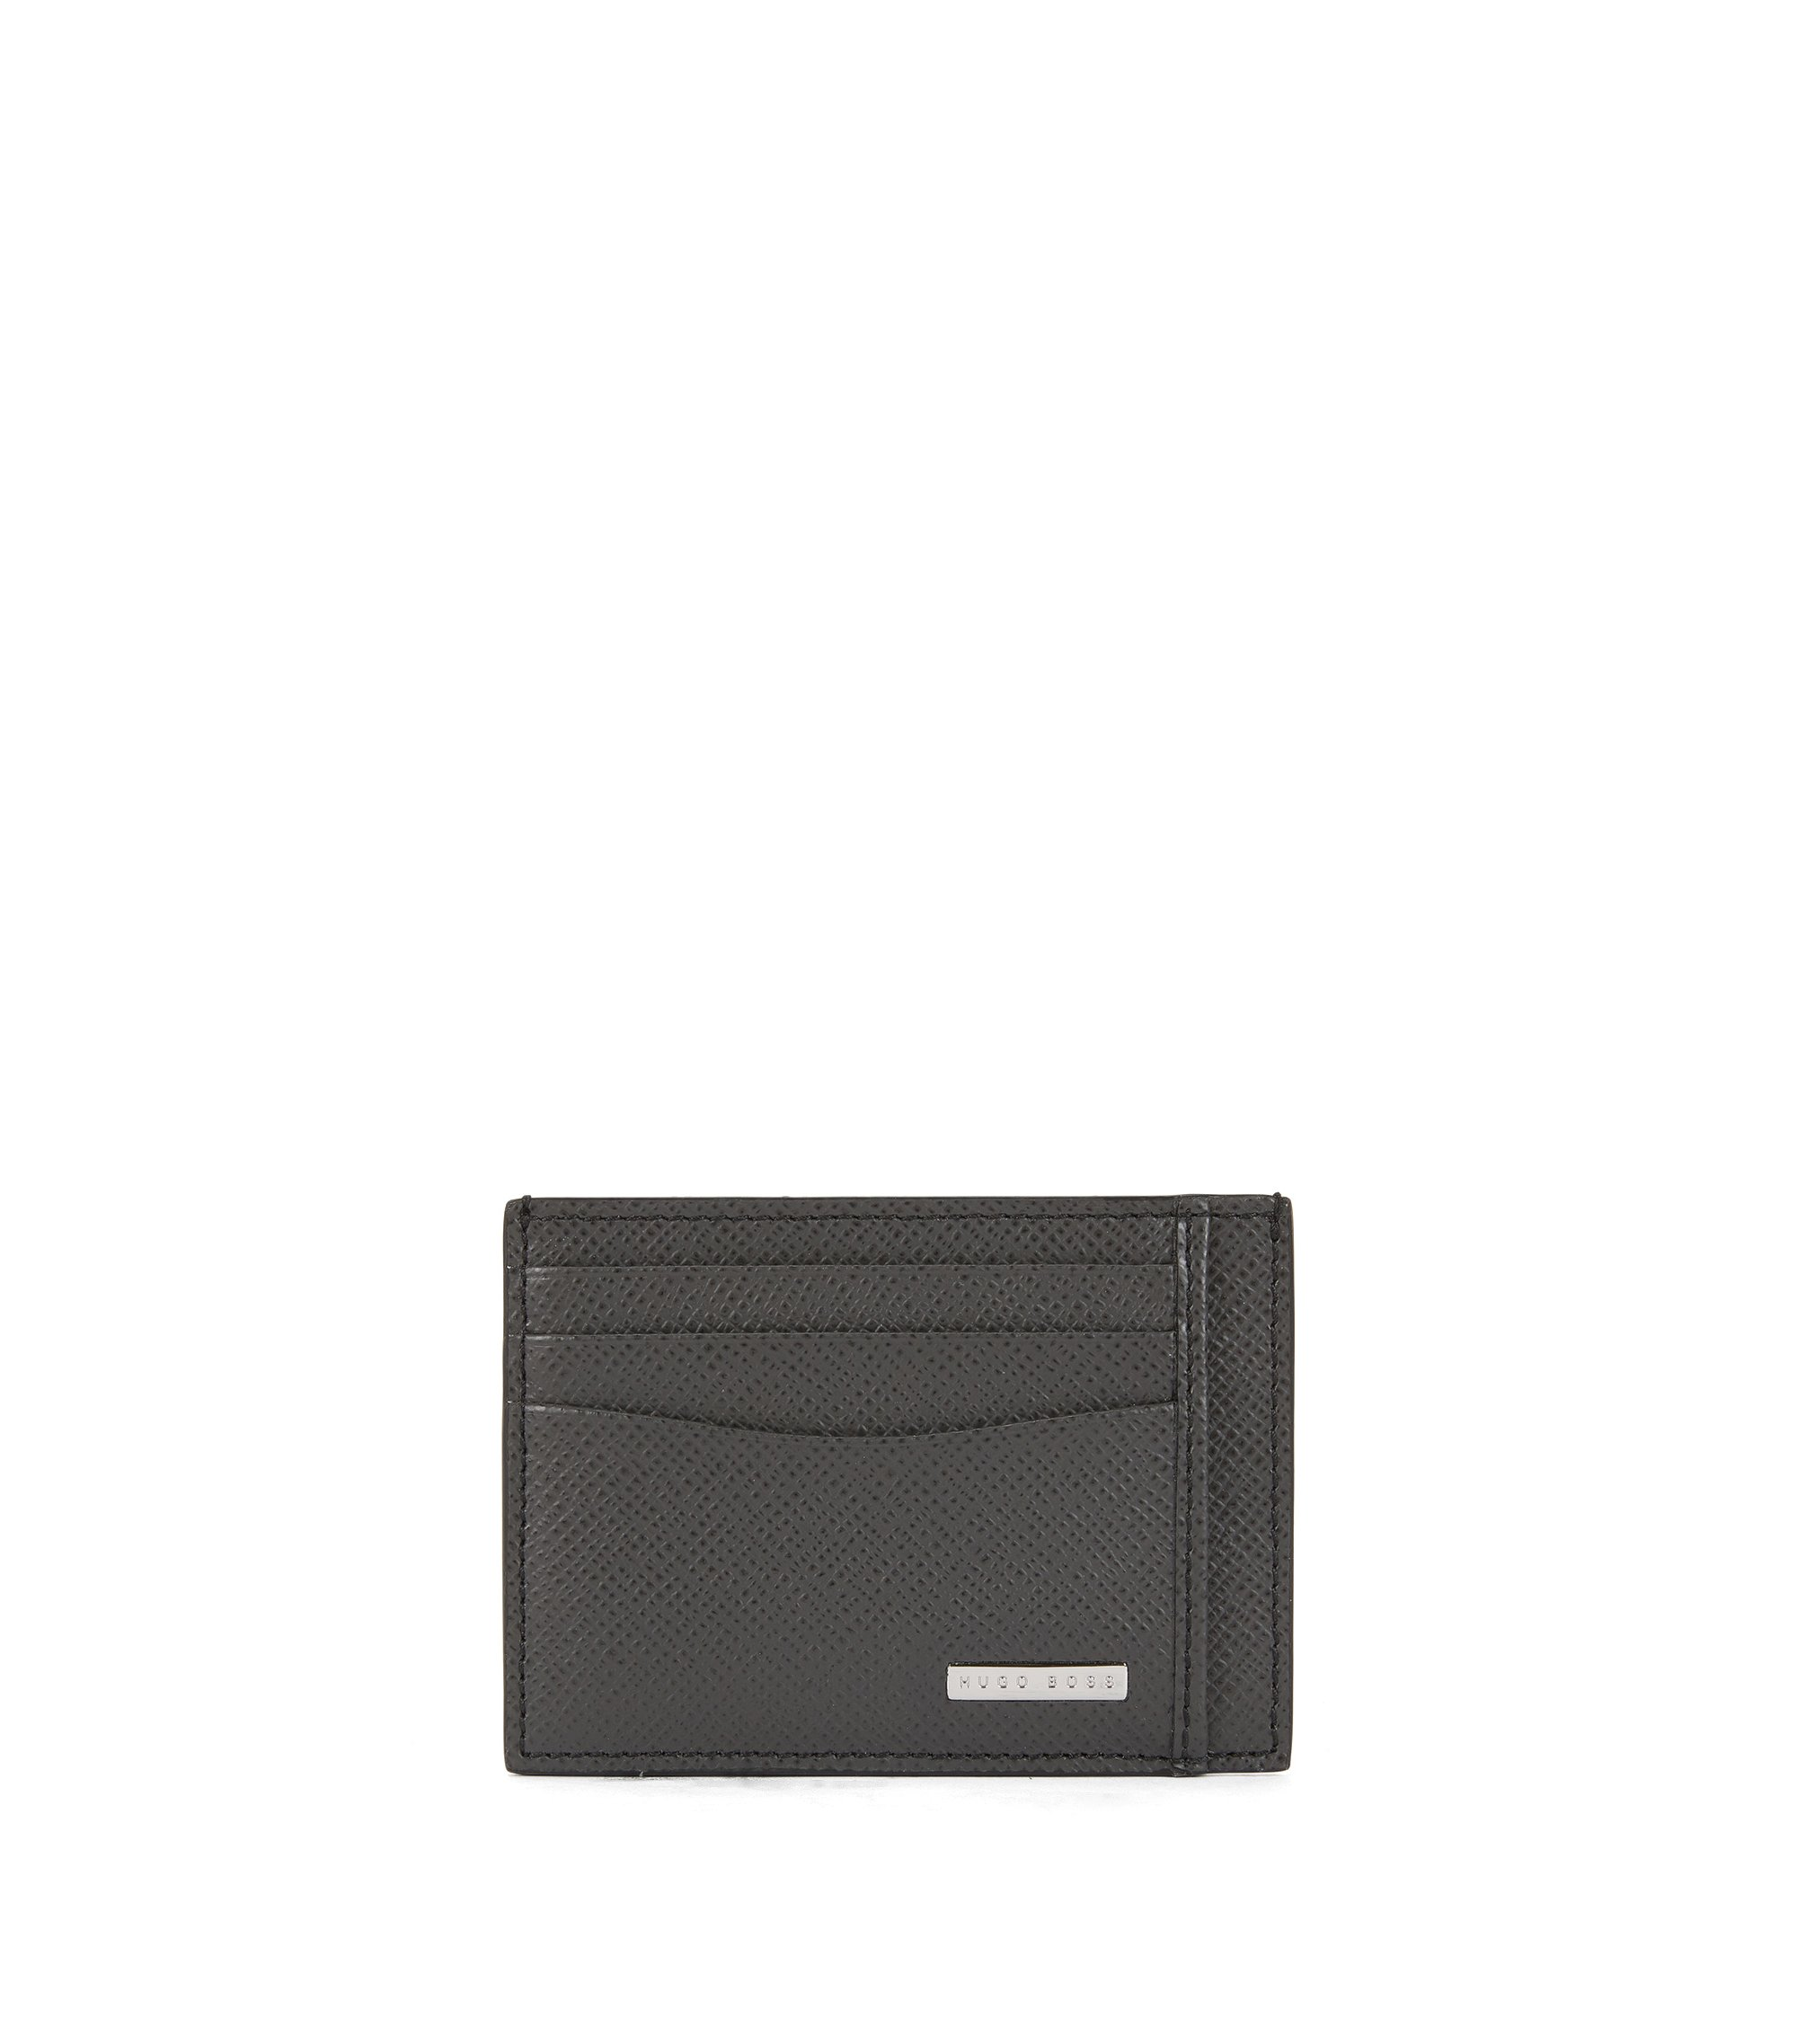 Porte-cartes Signature Collection, en cuir palmellato, Gris sombre